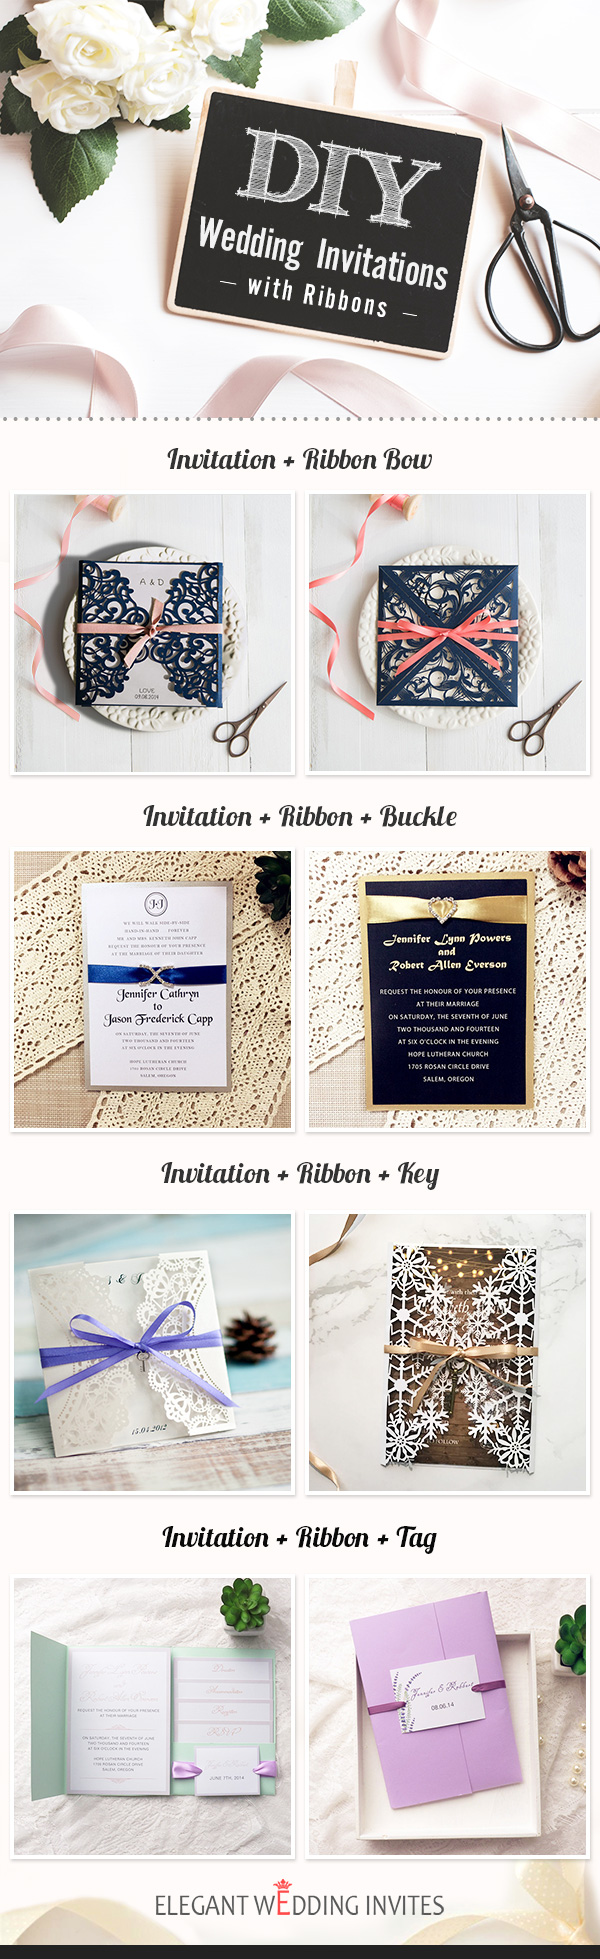 DIY Wedding Invitations with Ribbons